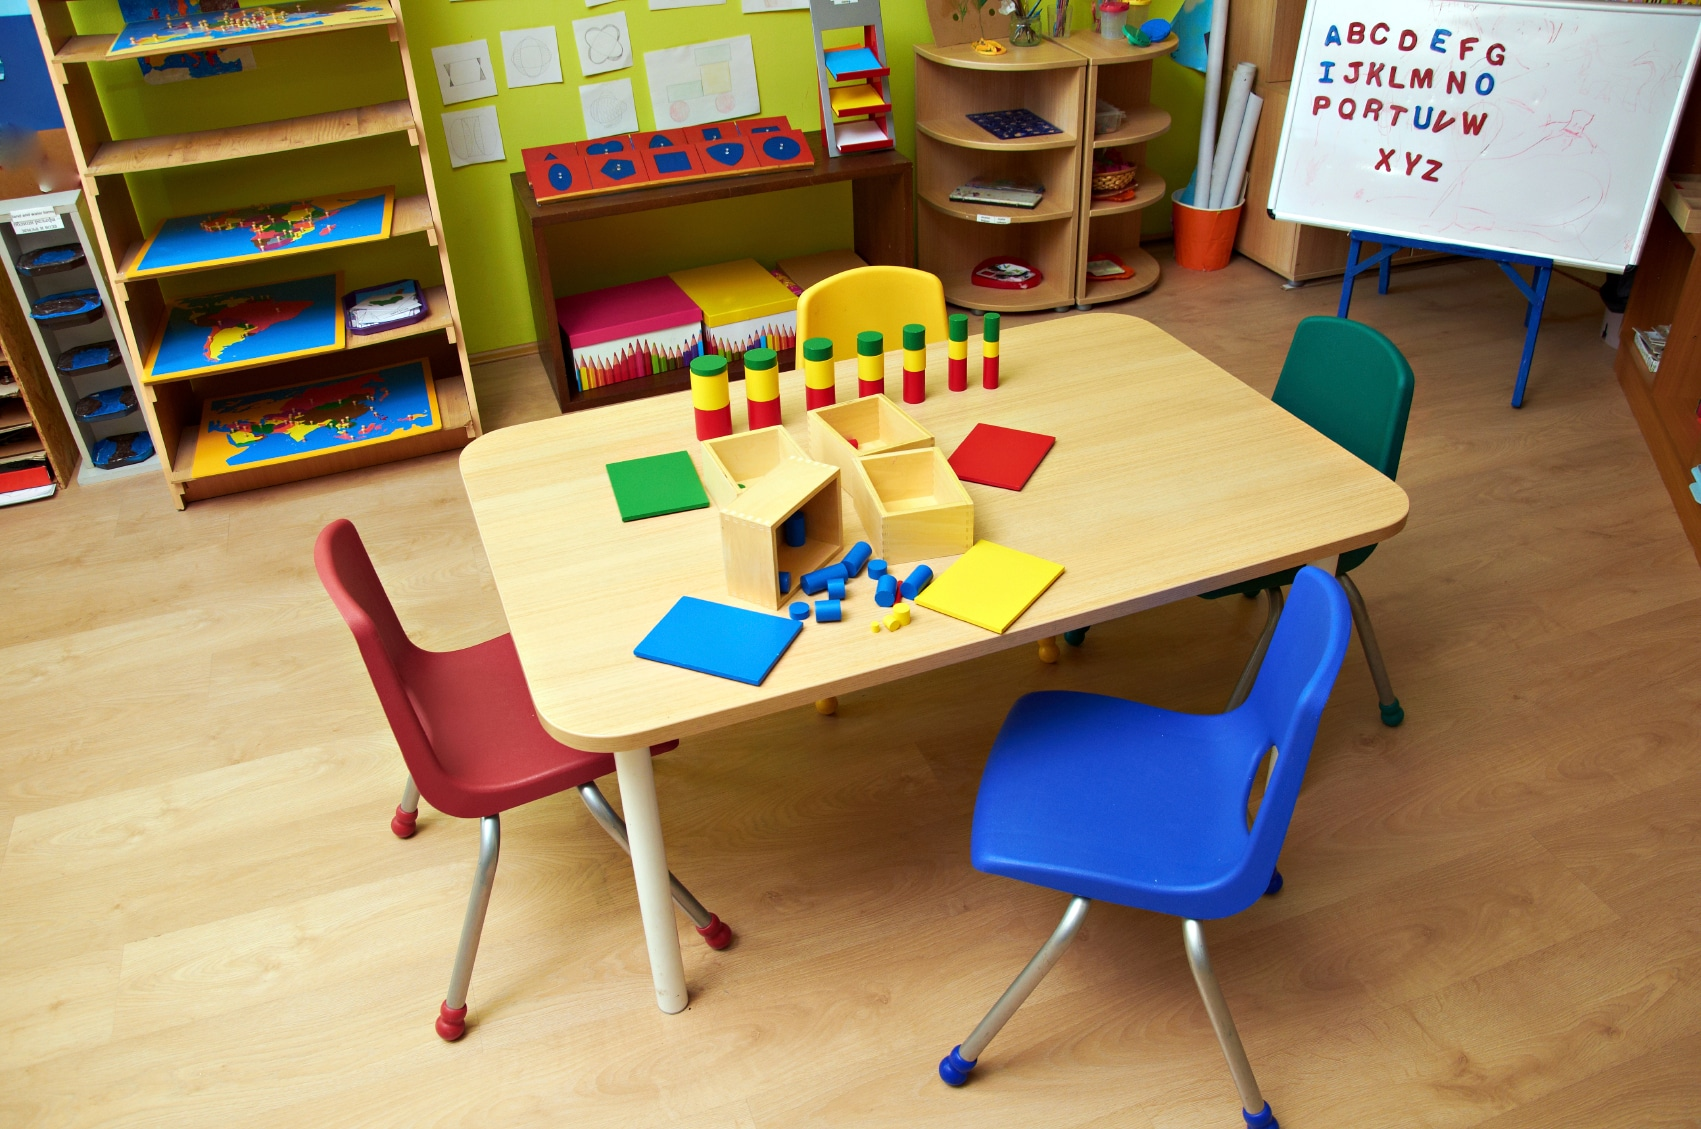 CHP_Export_137886455_Generic photo of an empty table at a daycare centre - childcare centre. Picture